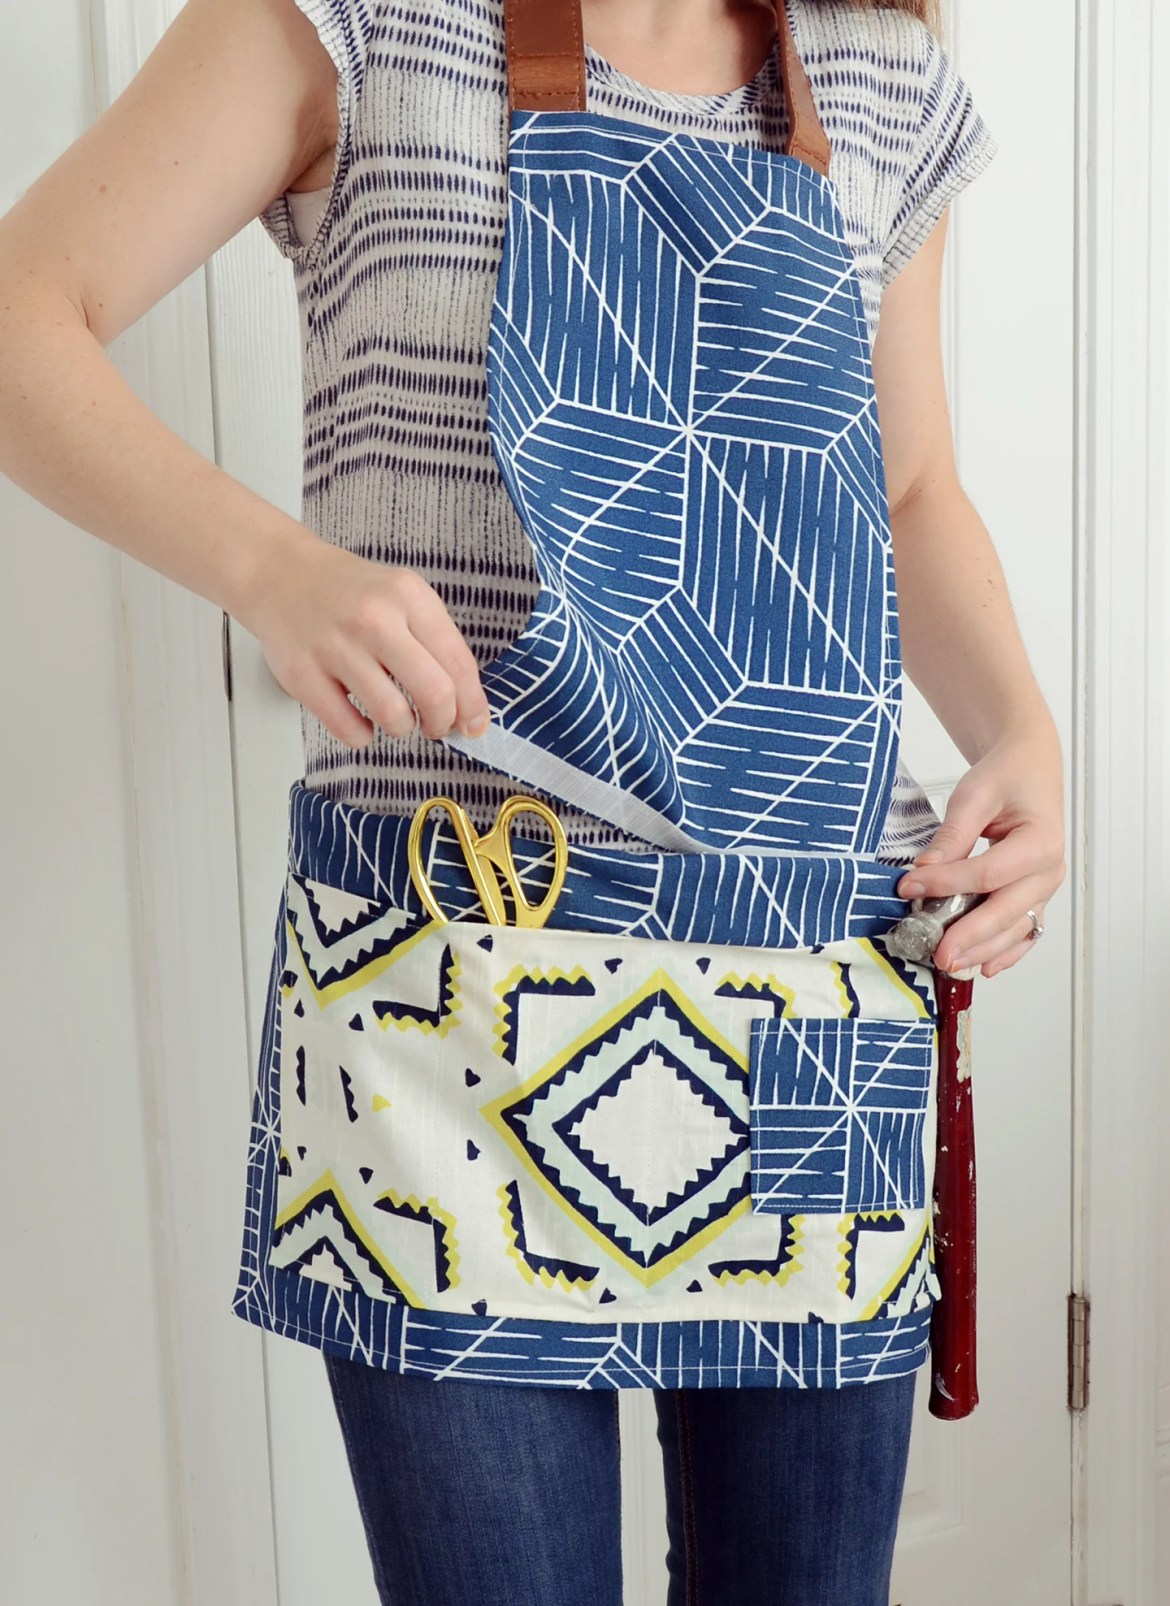 Make This! Crafter's Tool Belt With Detachable Apron | Curbly #diy #sewing